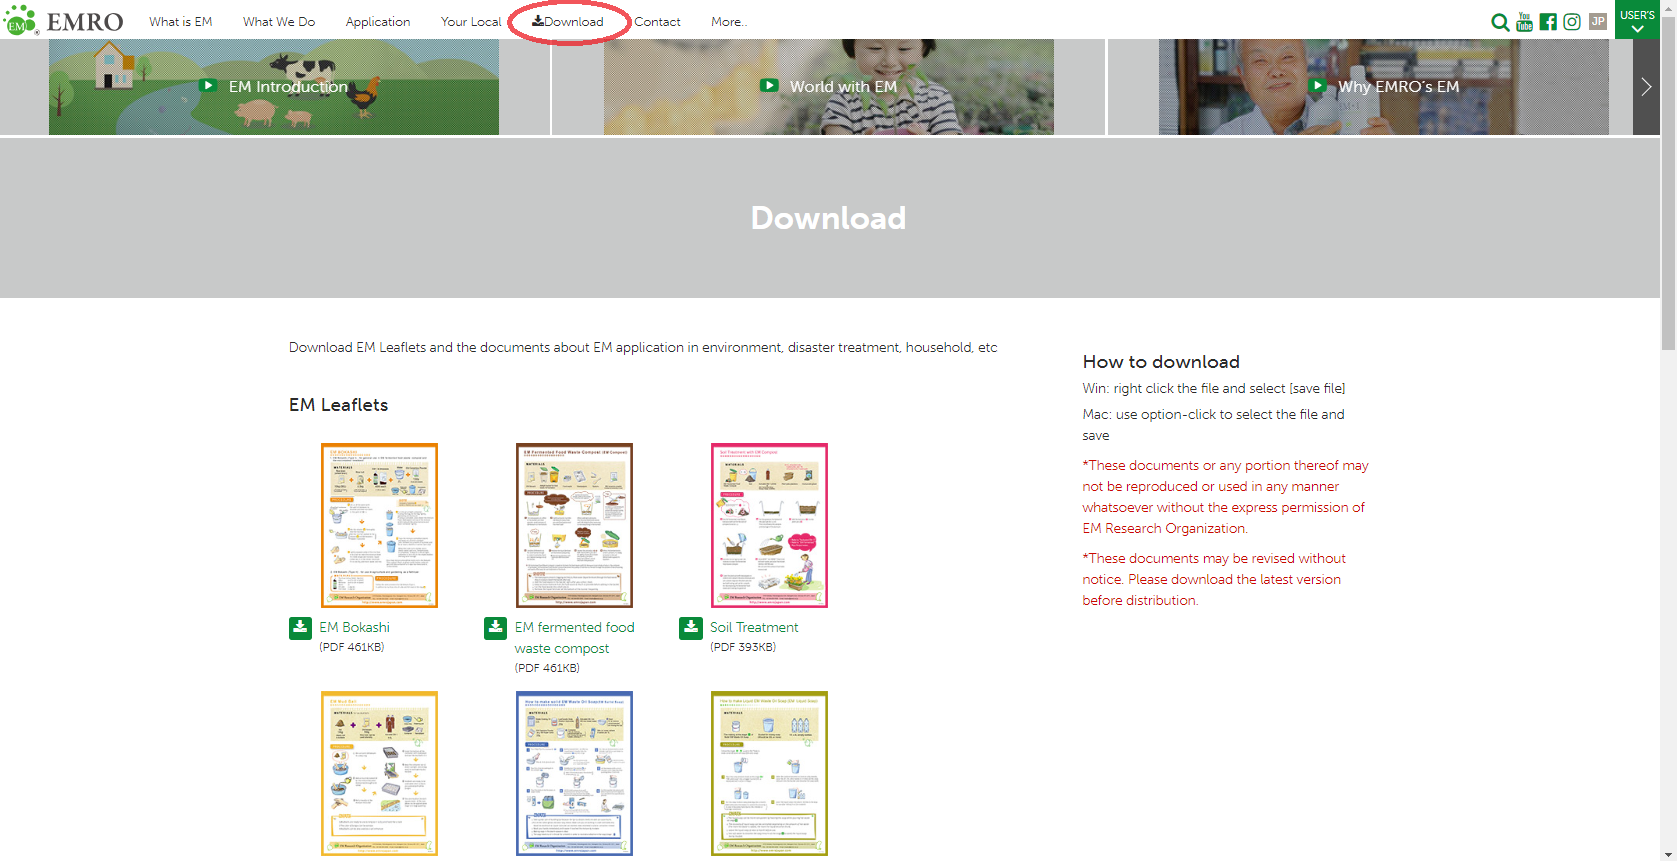 A NEW download page on EMRO's website!